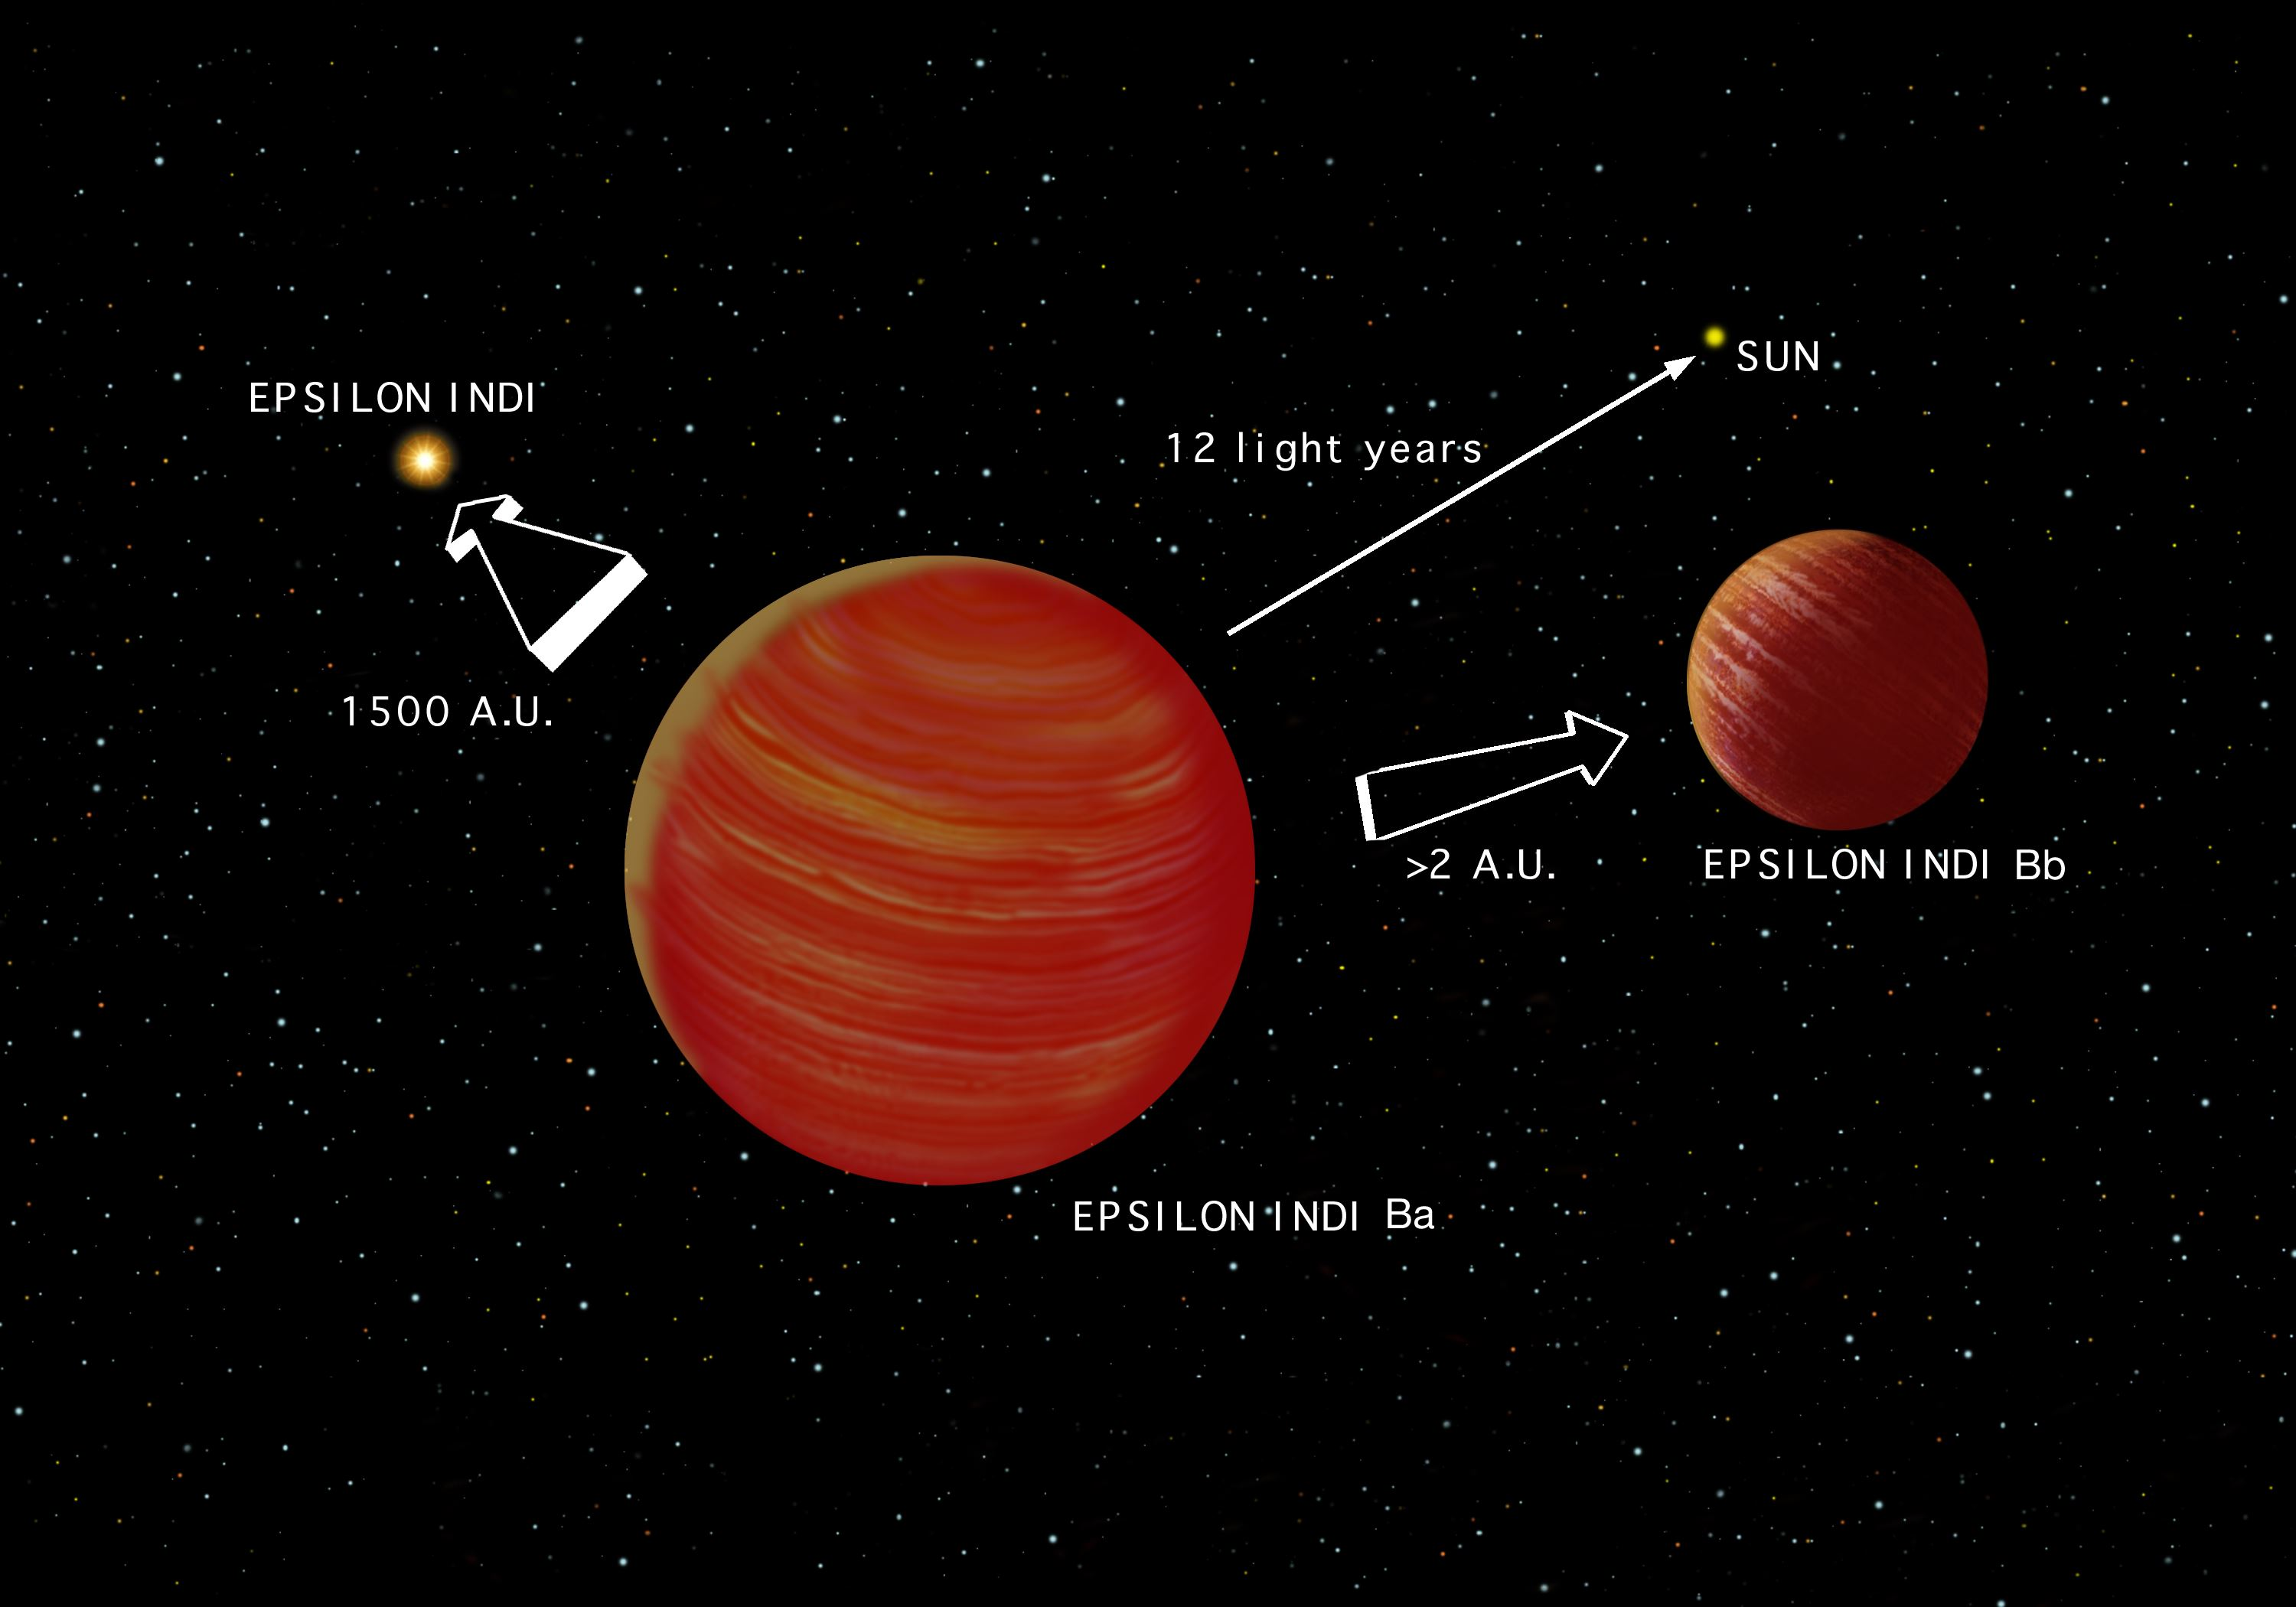 Artist s Conception of Epsilon Indi System labelled